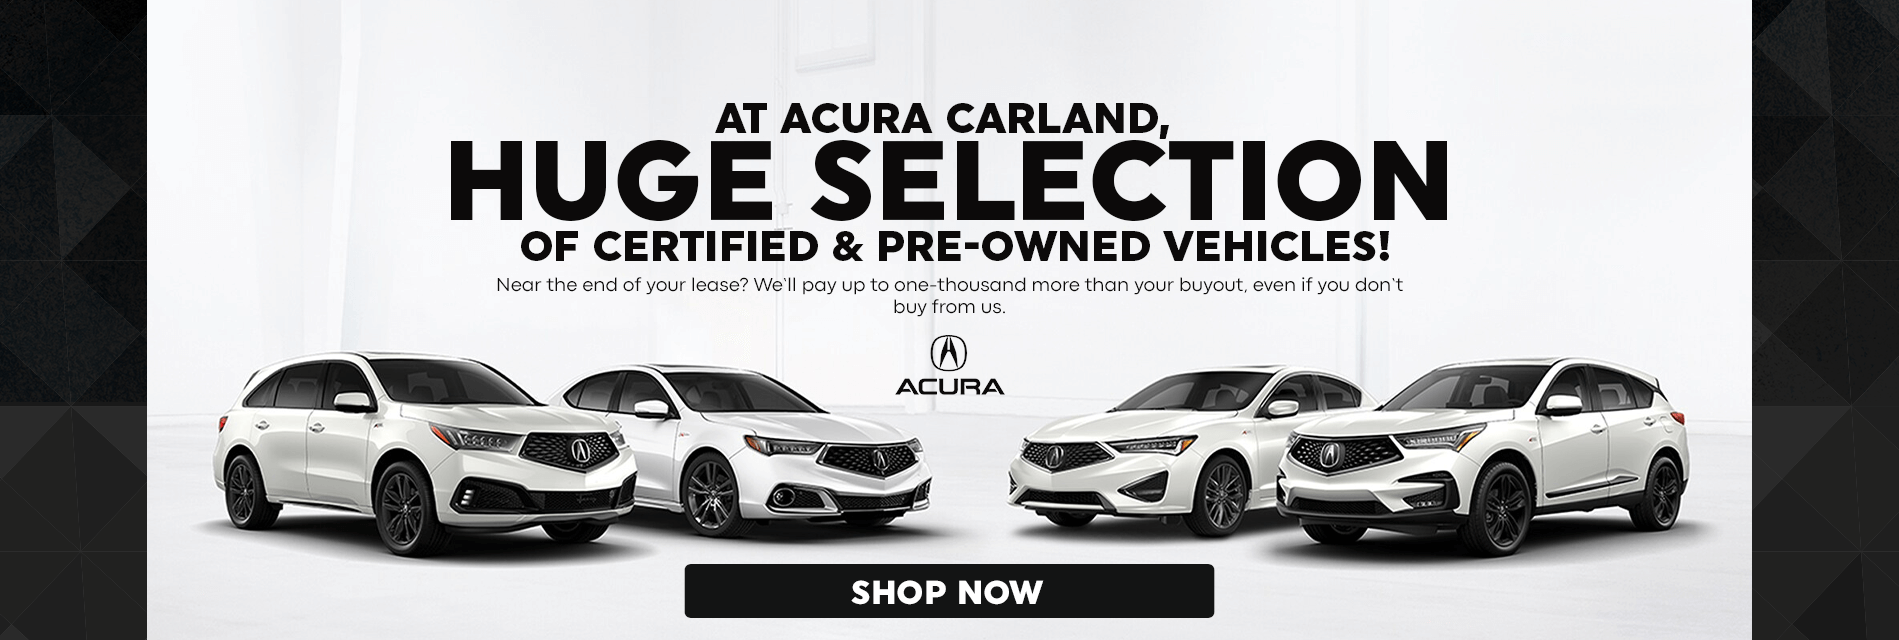 Huge Selection of Certified Pre-Owned Vehicles